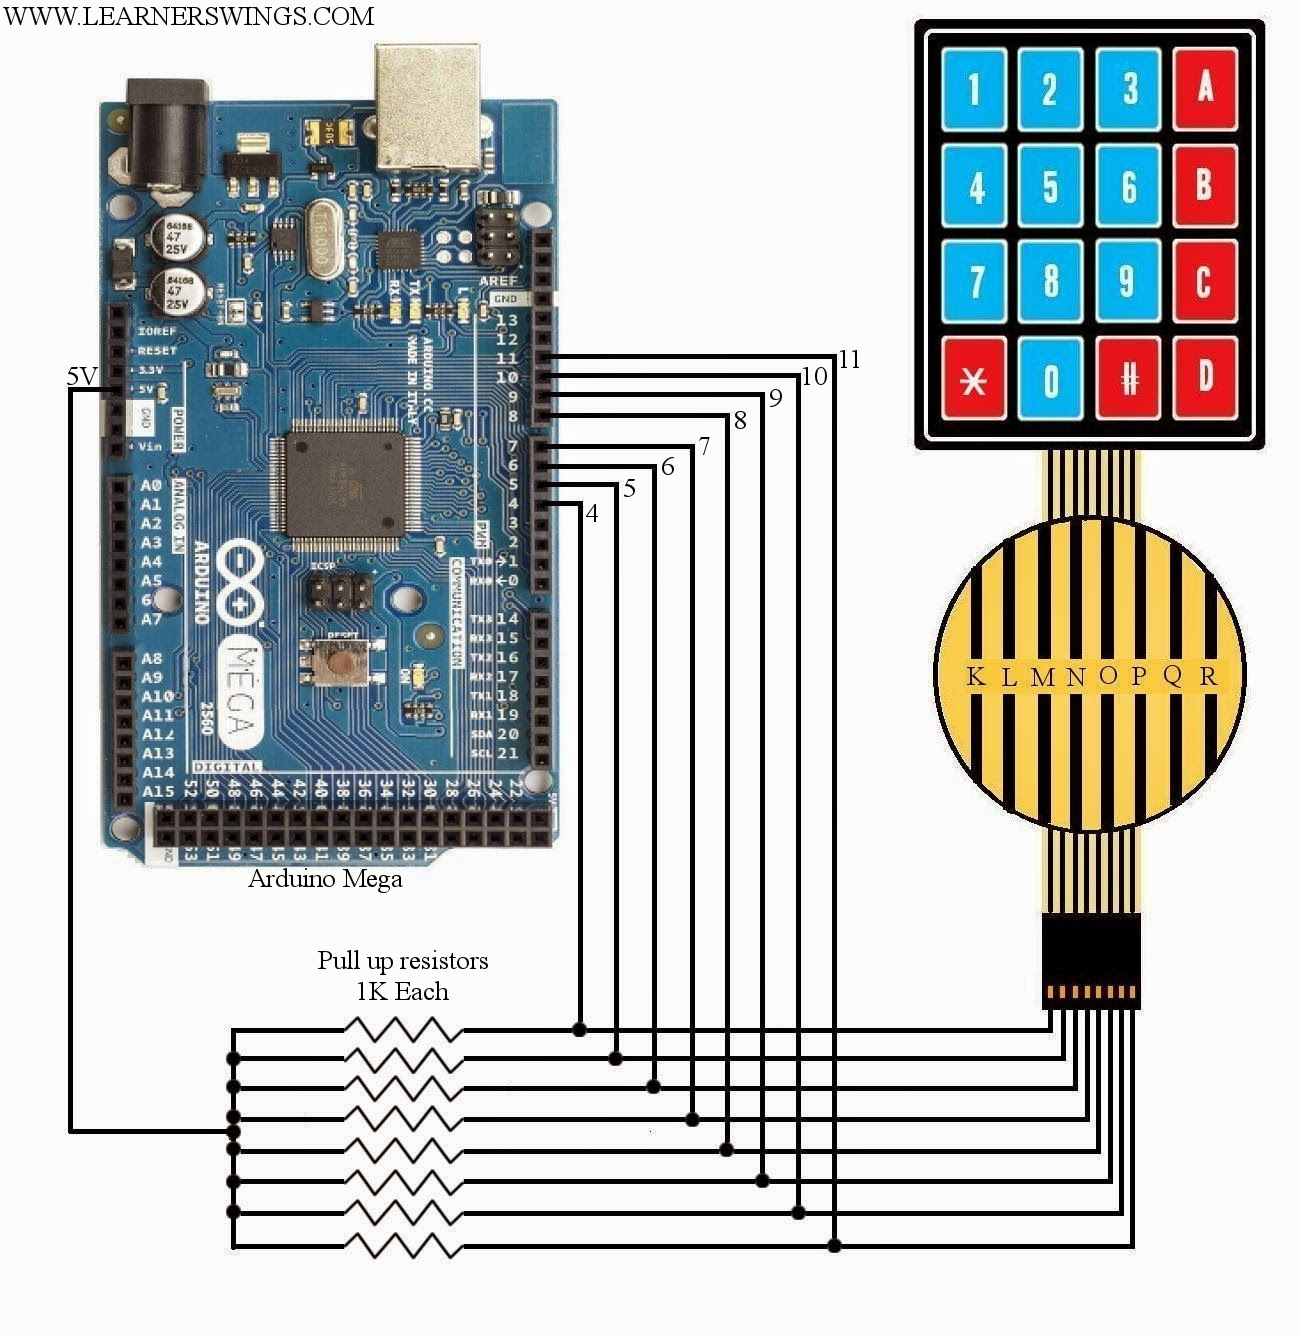 Demonstration Of Interfacing 44 Button Pad To Arduino Mega Circuit A Is Here We Will Design Interface This Simple Done As Shown In The